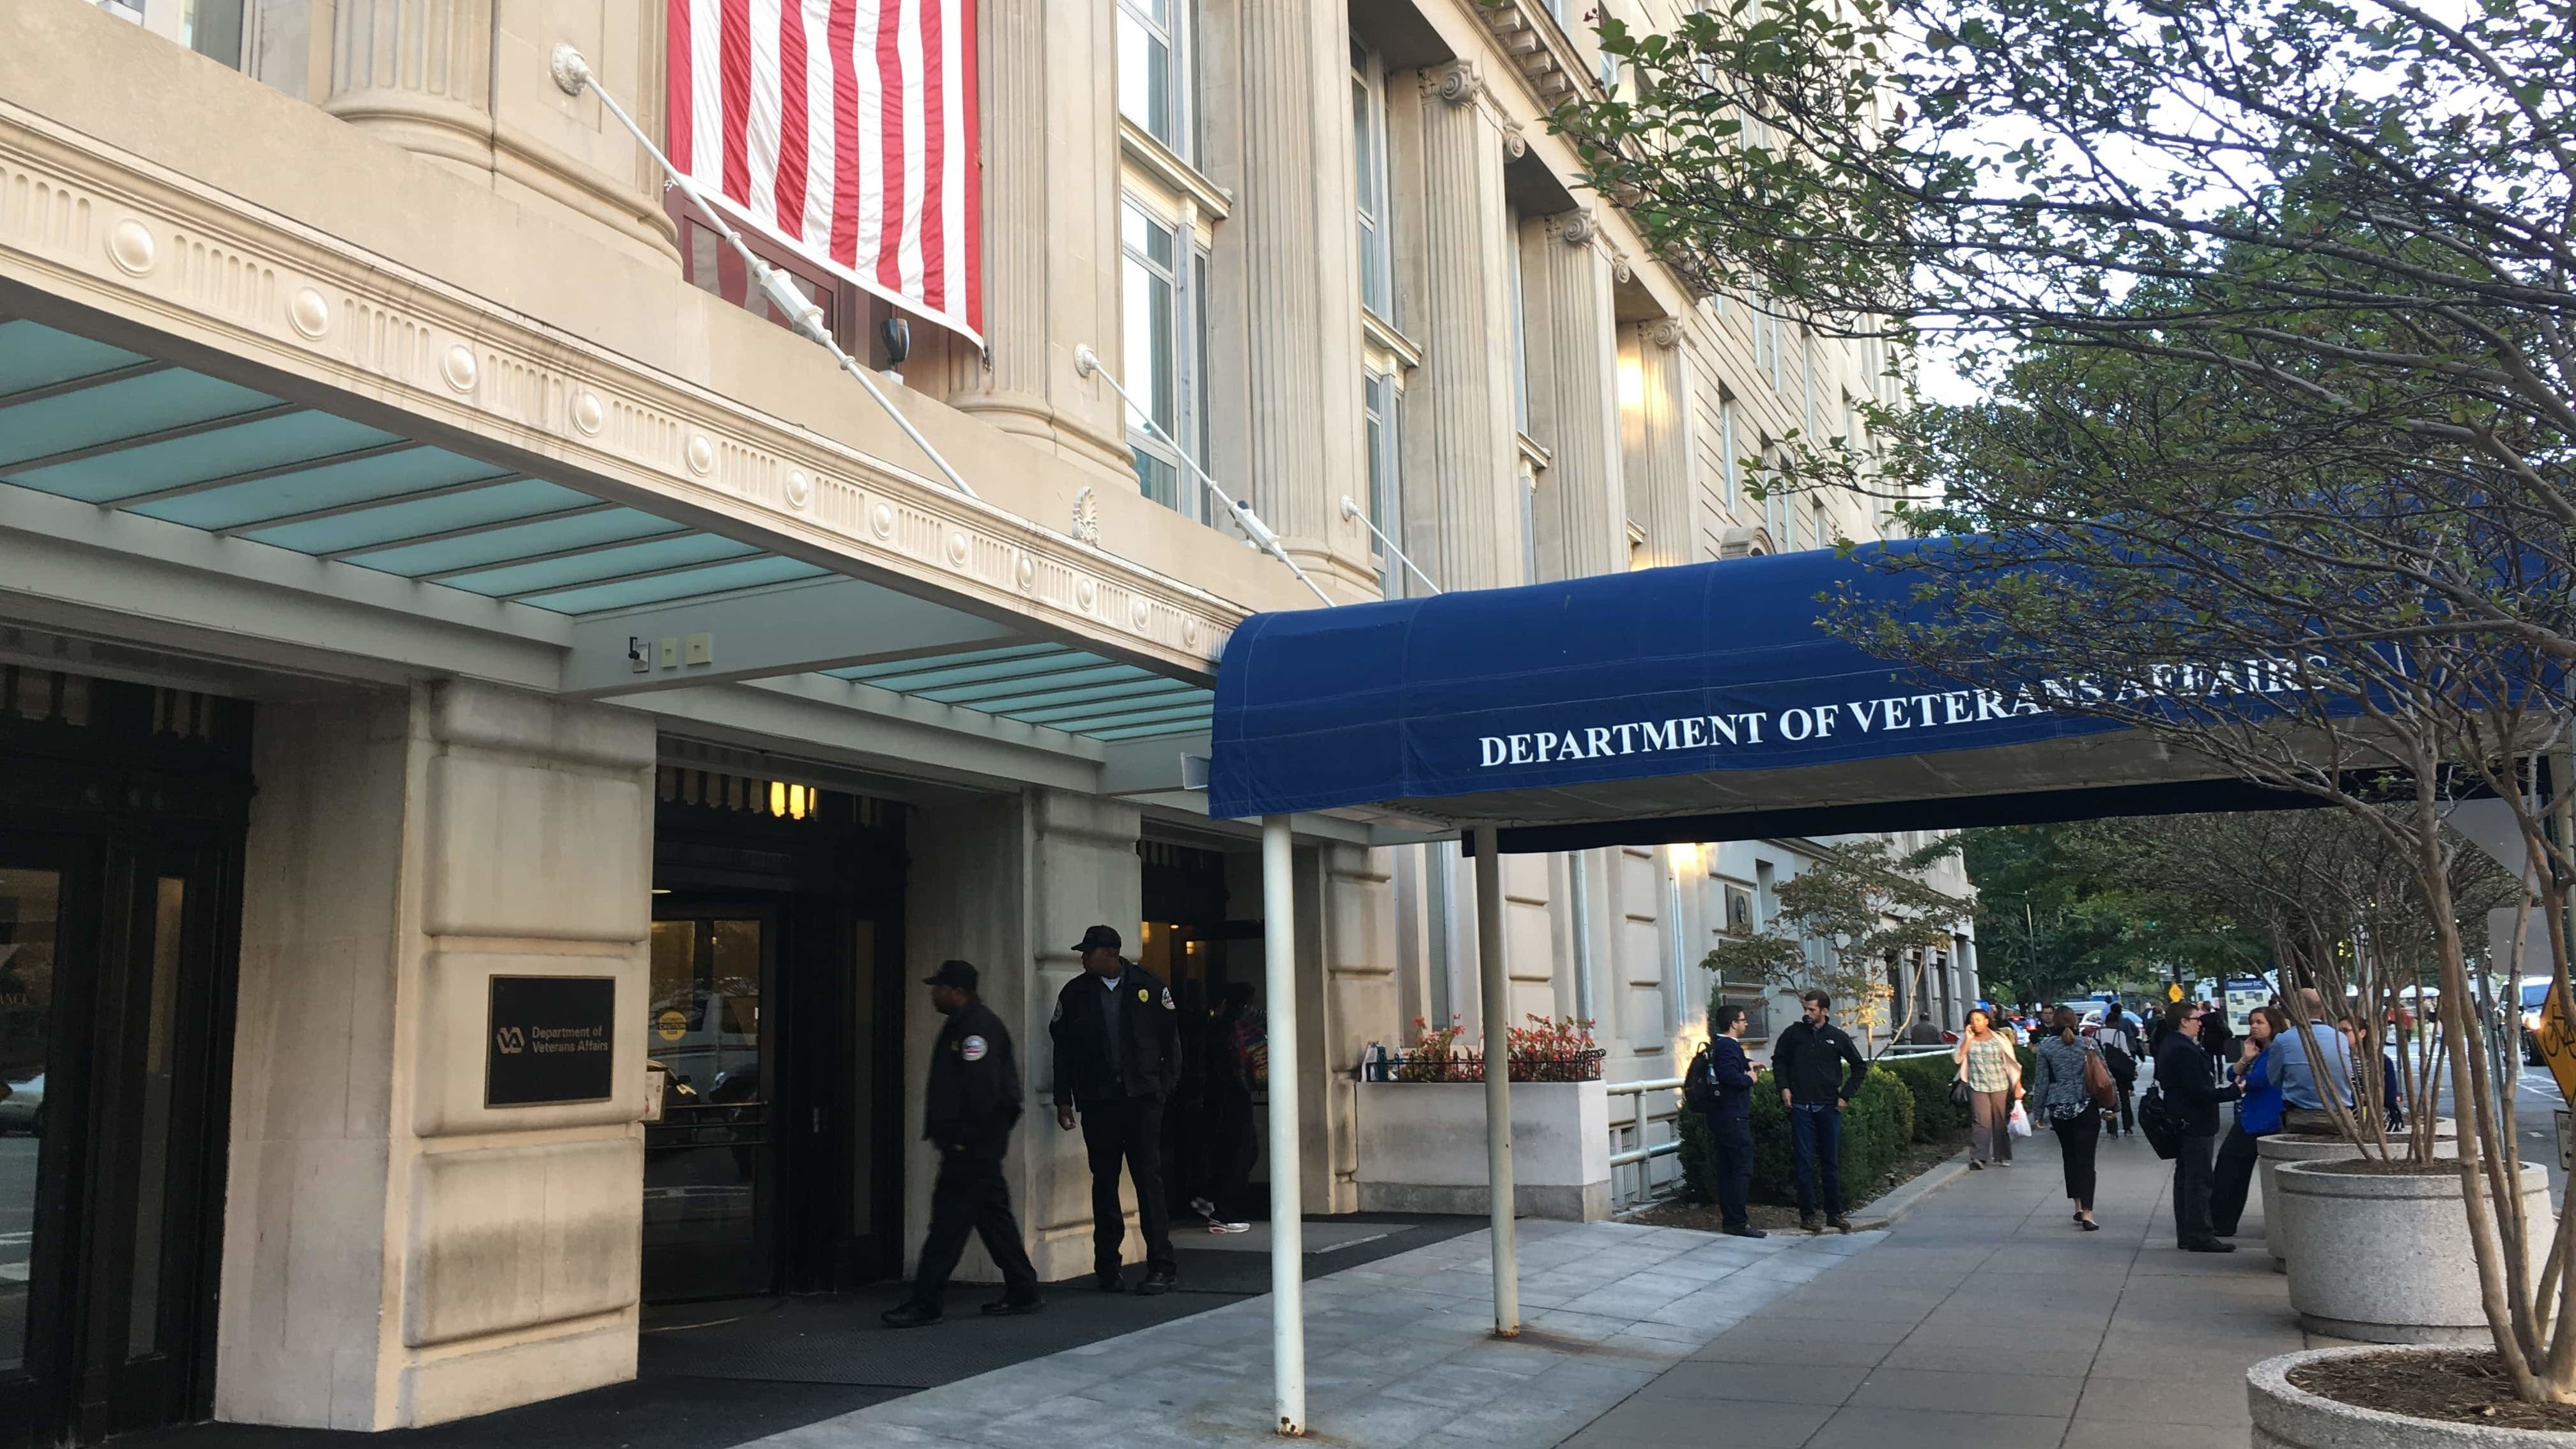 The Washington, D.C., headquarters of the Department of Veterans Affairs.